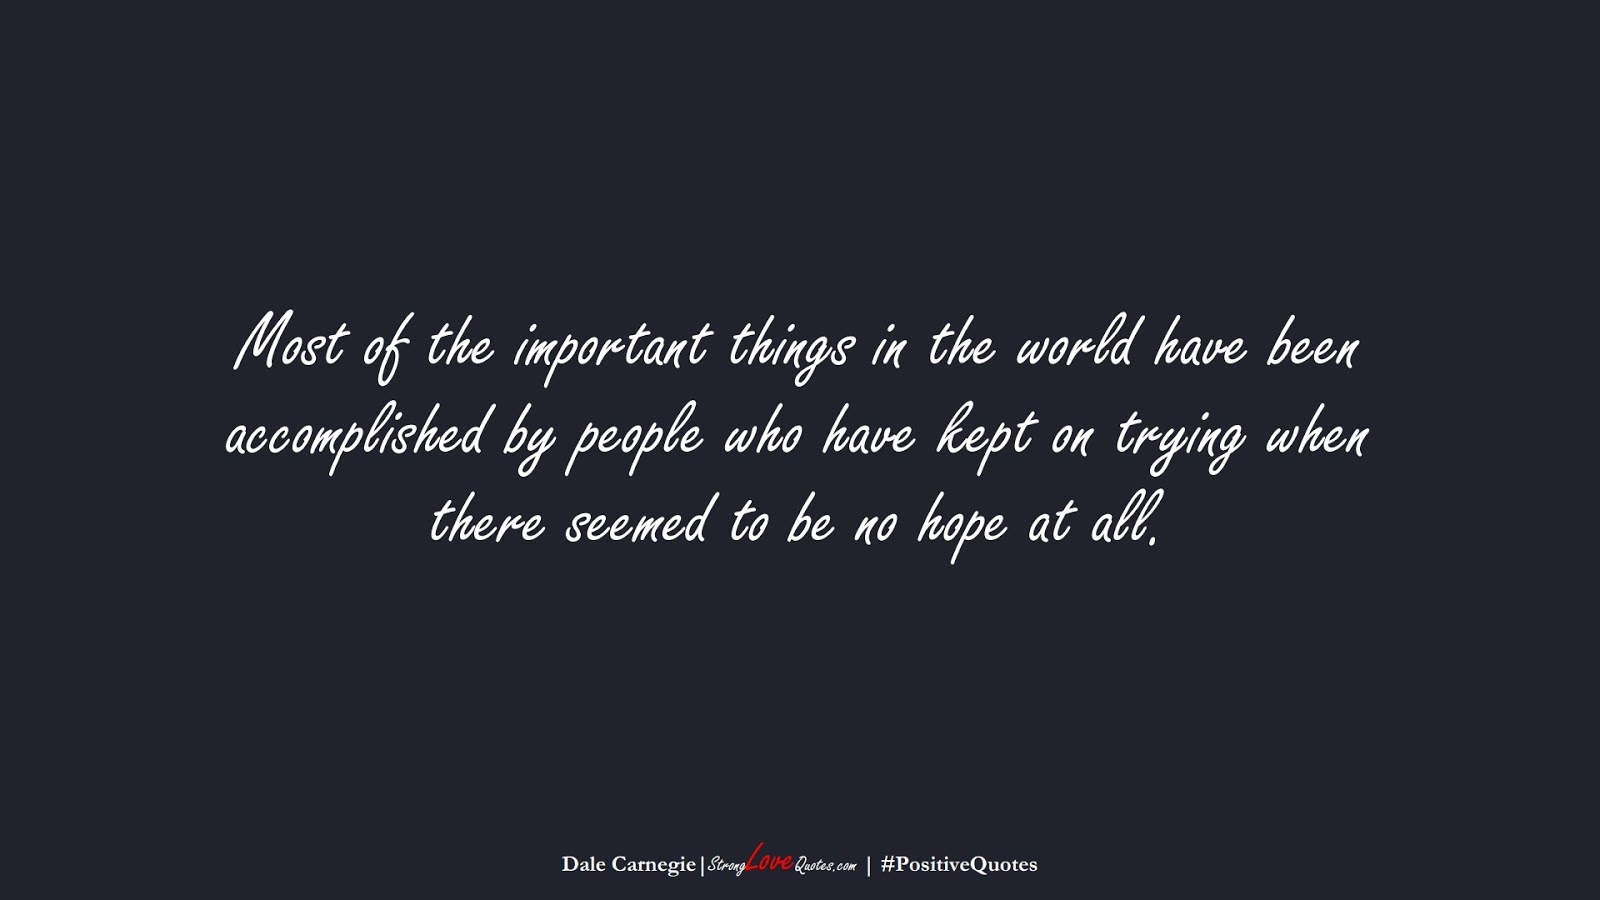 Most of the important things in the world have been accomplished by people who have kept on trying when there seemed to be no hope at all. (Dale Carnegie);  #PositiveQuotes